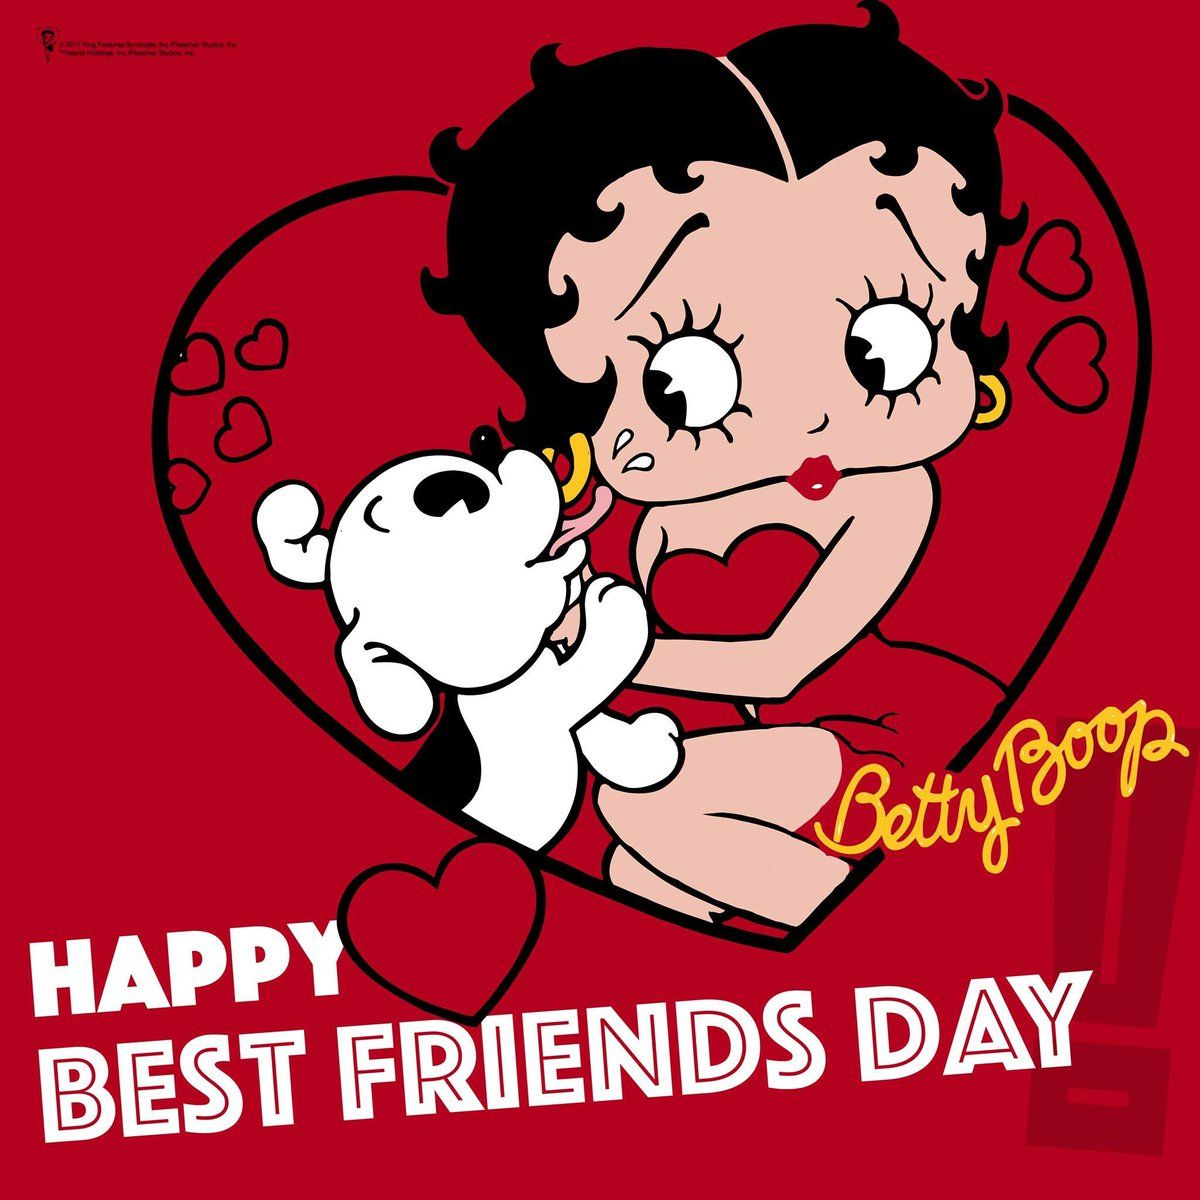 Happy Best Friends Day With Betty Boop And Pudgy Betty Boop